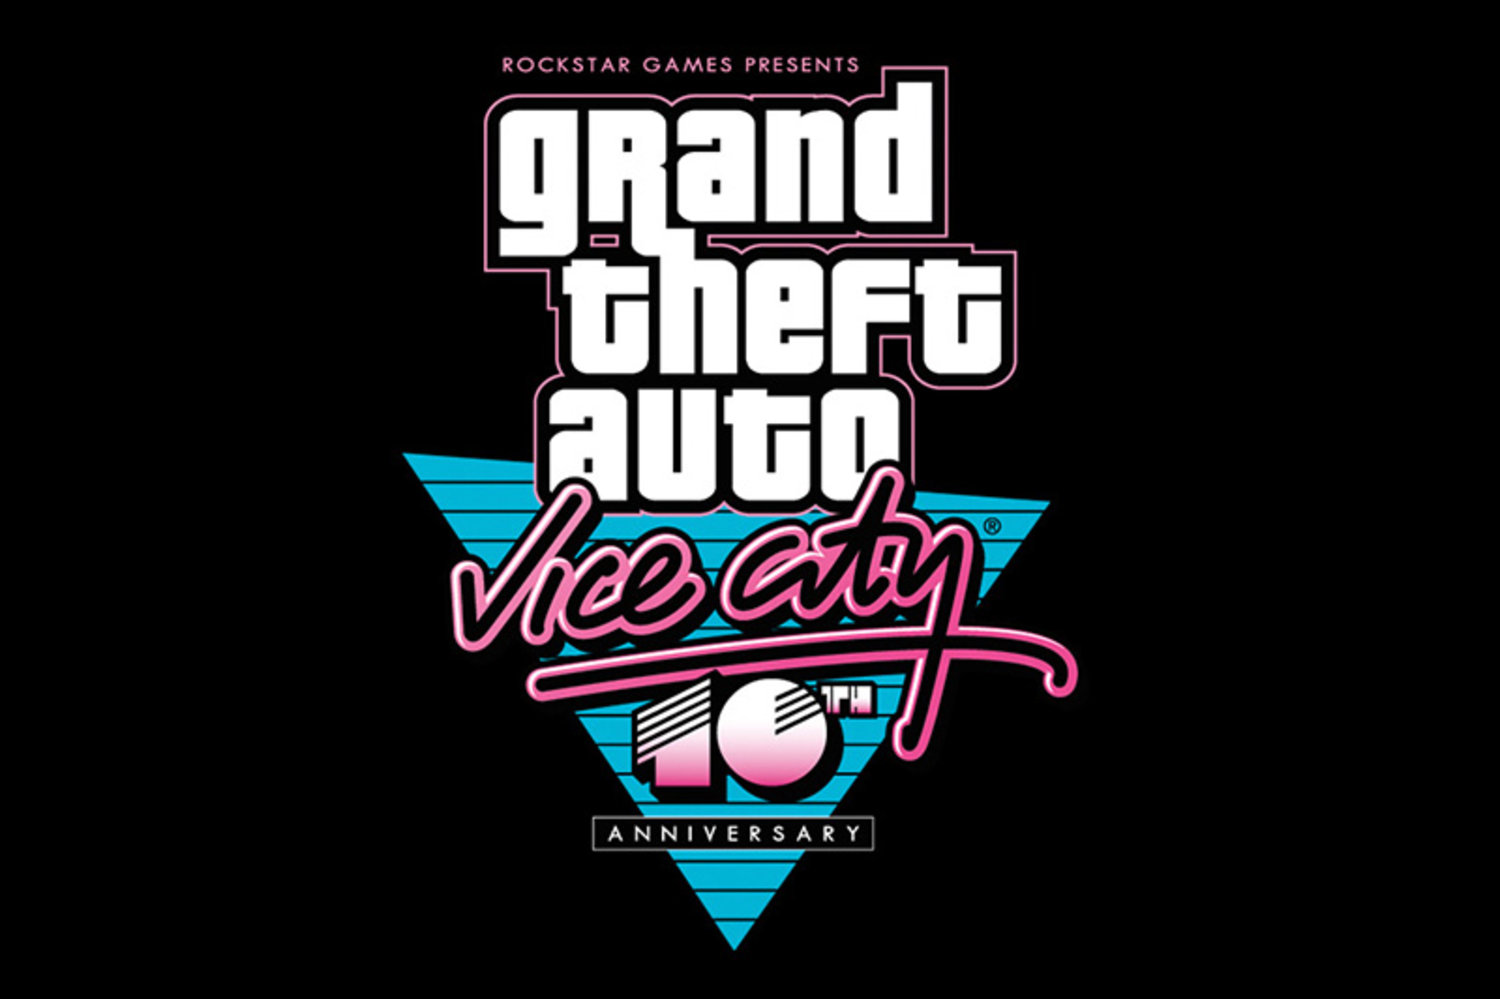 Vice City Anniversay font?